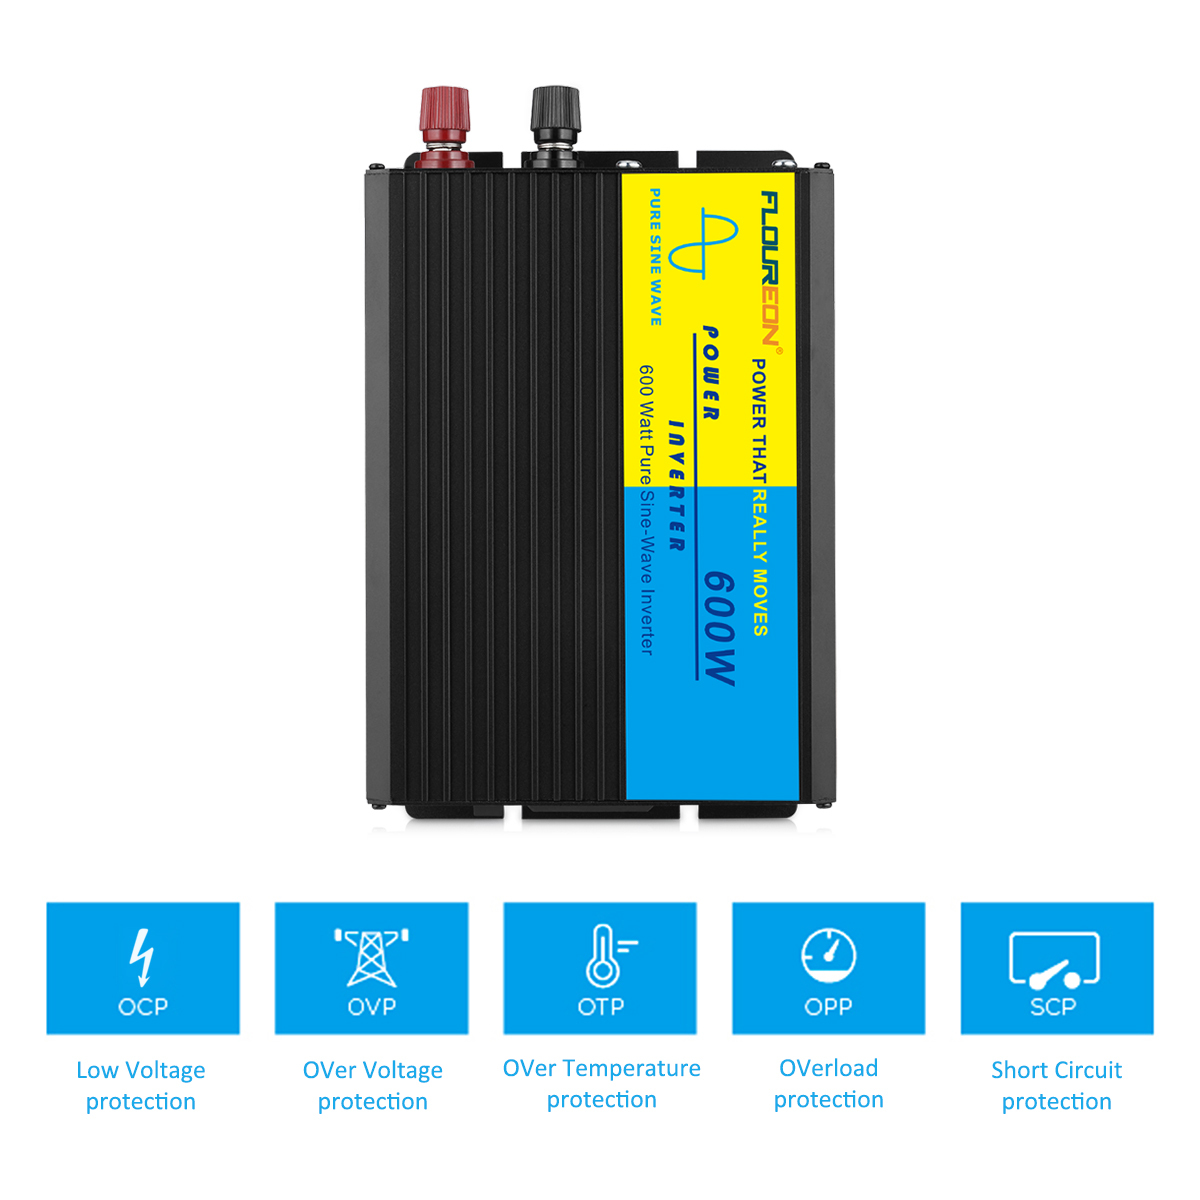 New Pure Sine Wave Power Inverter 600w Peak 1200w Dc 12v To 220v Ac Circuit Diagram As Well In This Product Before And After The Dual Soft Start Technology Cpus Core Spwm Pulse Width Control Original Constant Current